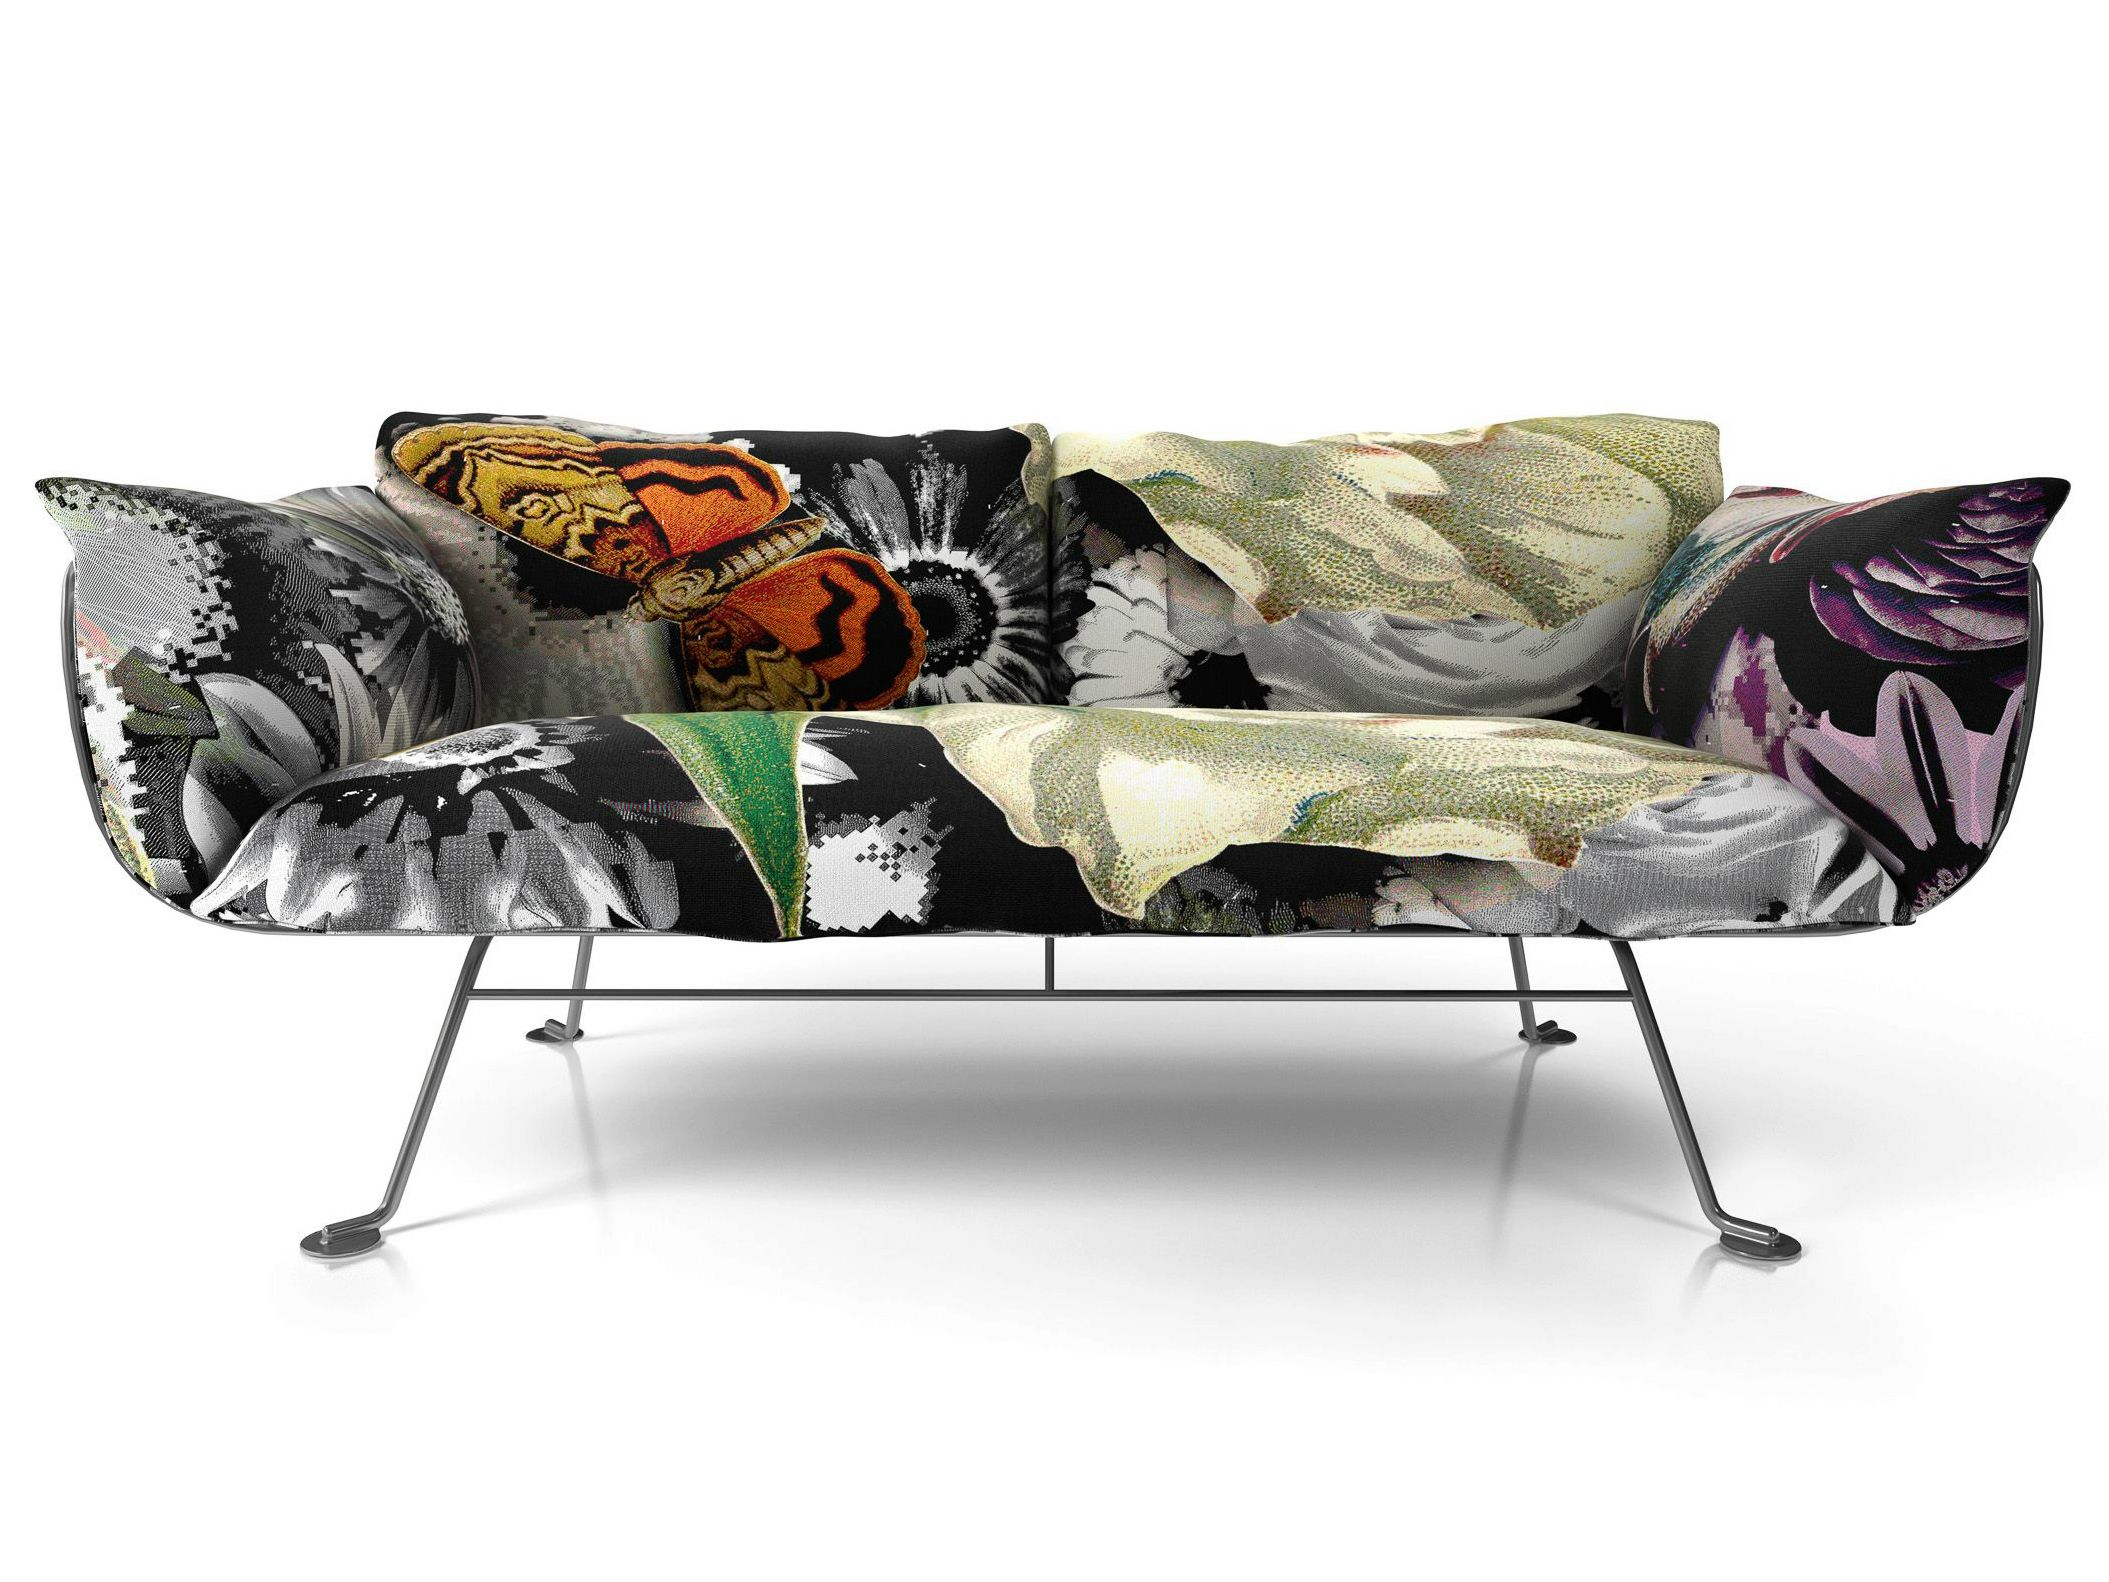 Sofa Sleeper Large designer sofa with bold upholstered finish from Moooi Designed by Marcel Wanders the Nest Sofa features a bold print upholstery in an array of lush